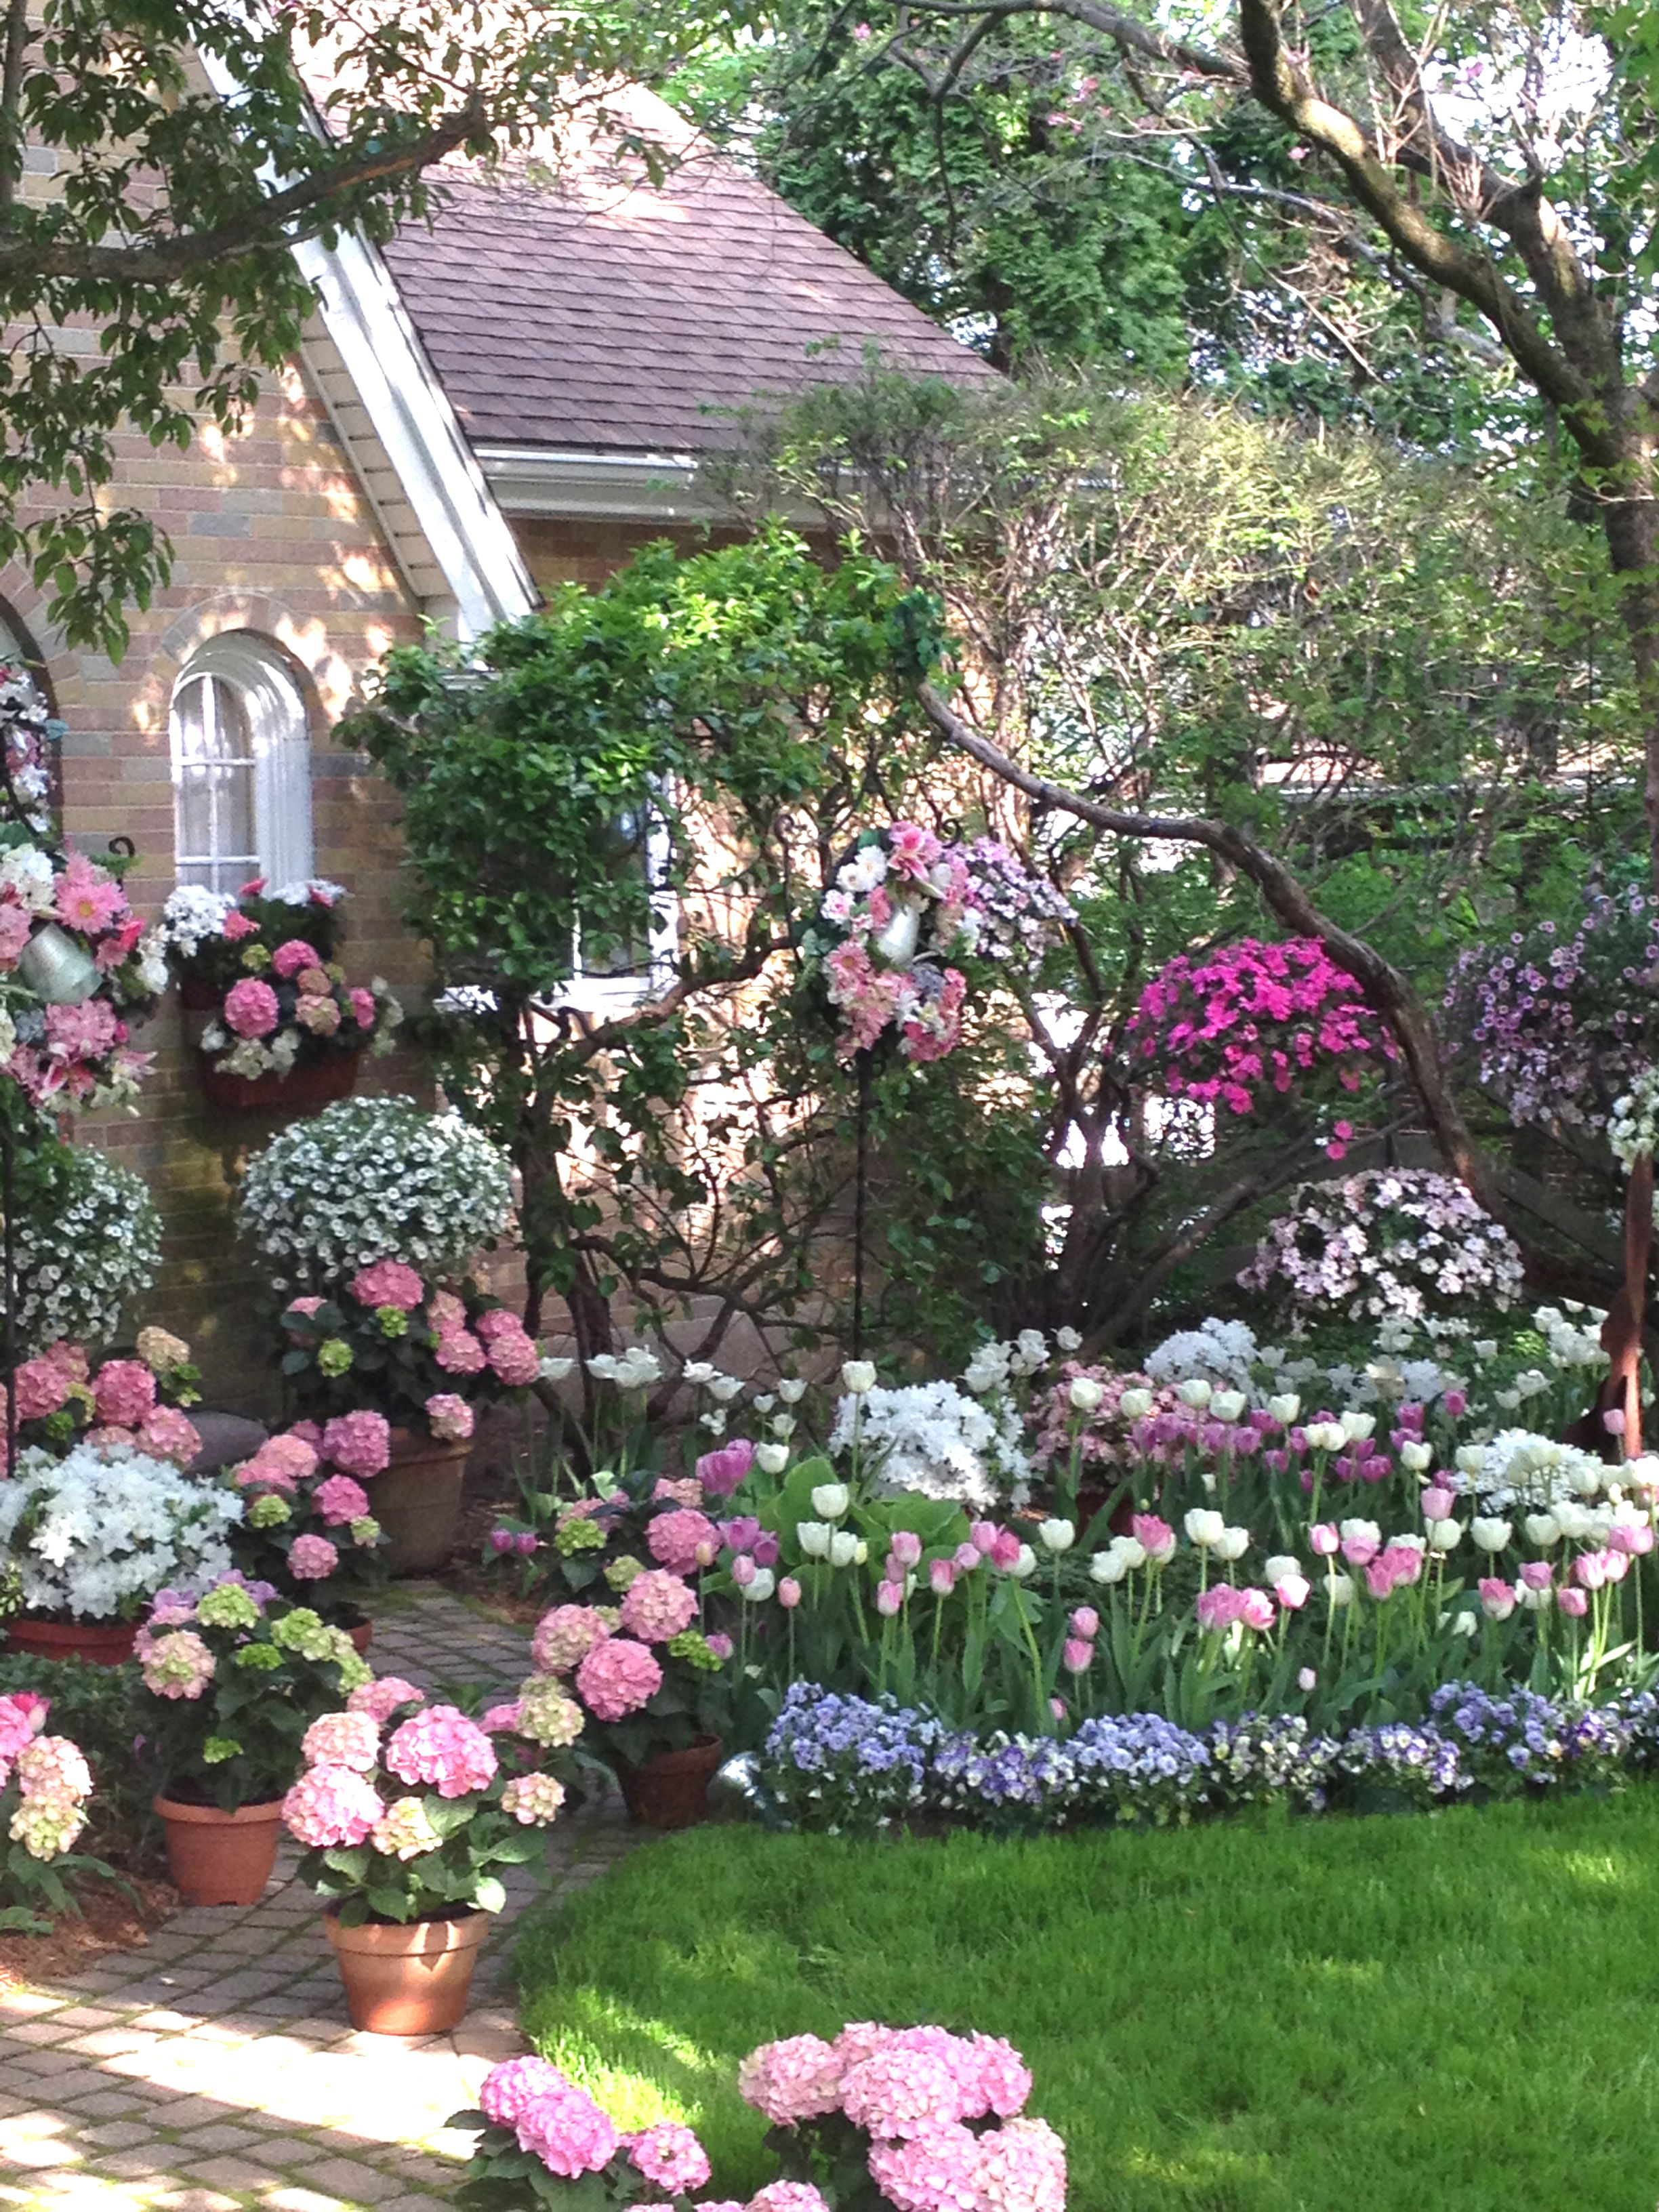 This Garden Appears Every May With Lots Of Hard Work By The Lady That Lives Here Idees Jardin Decoration Jardin